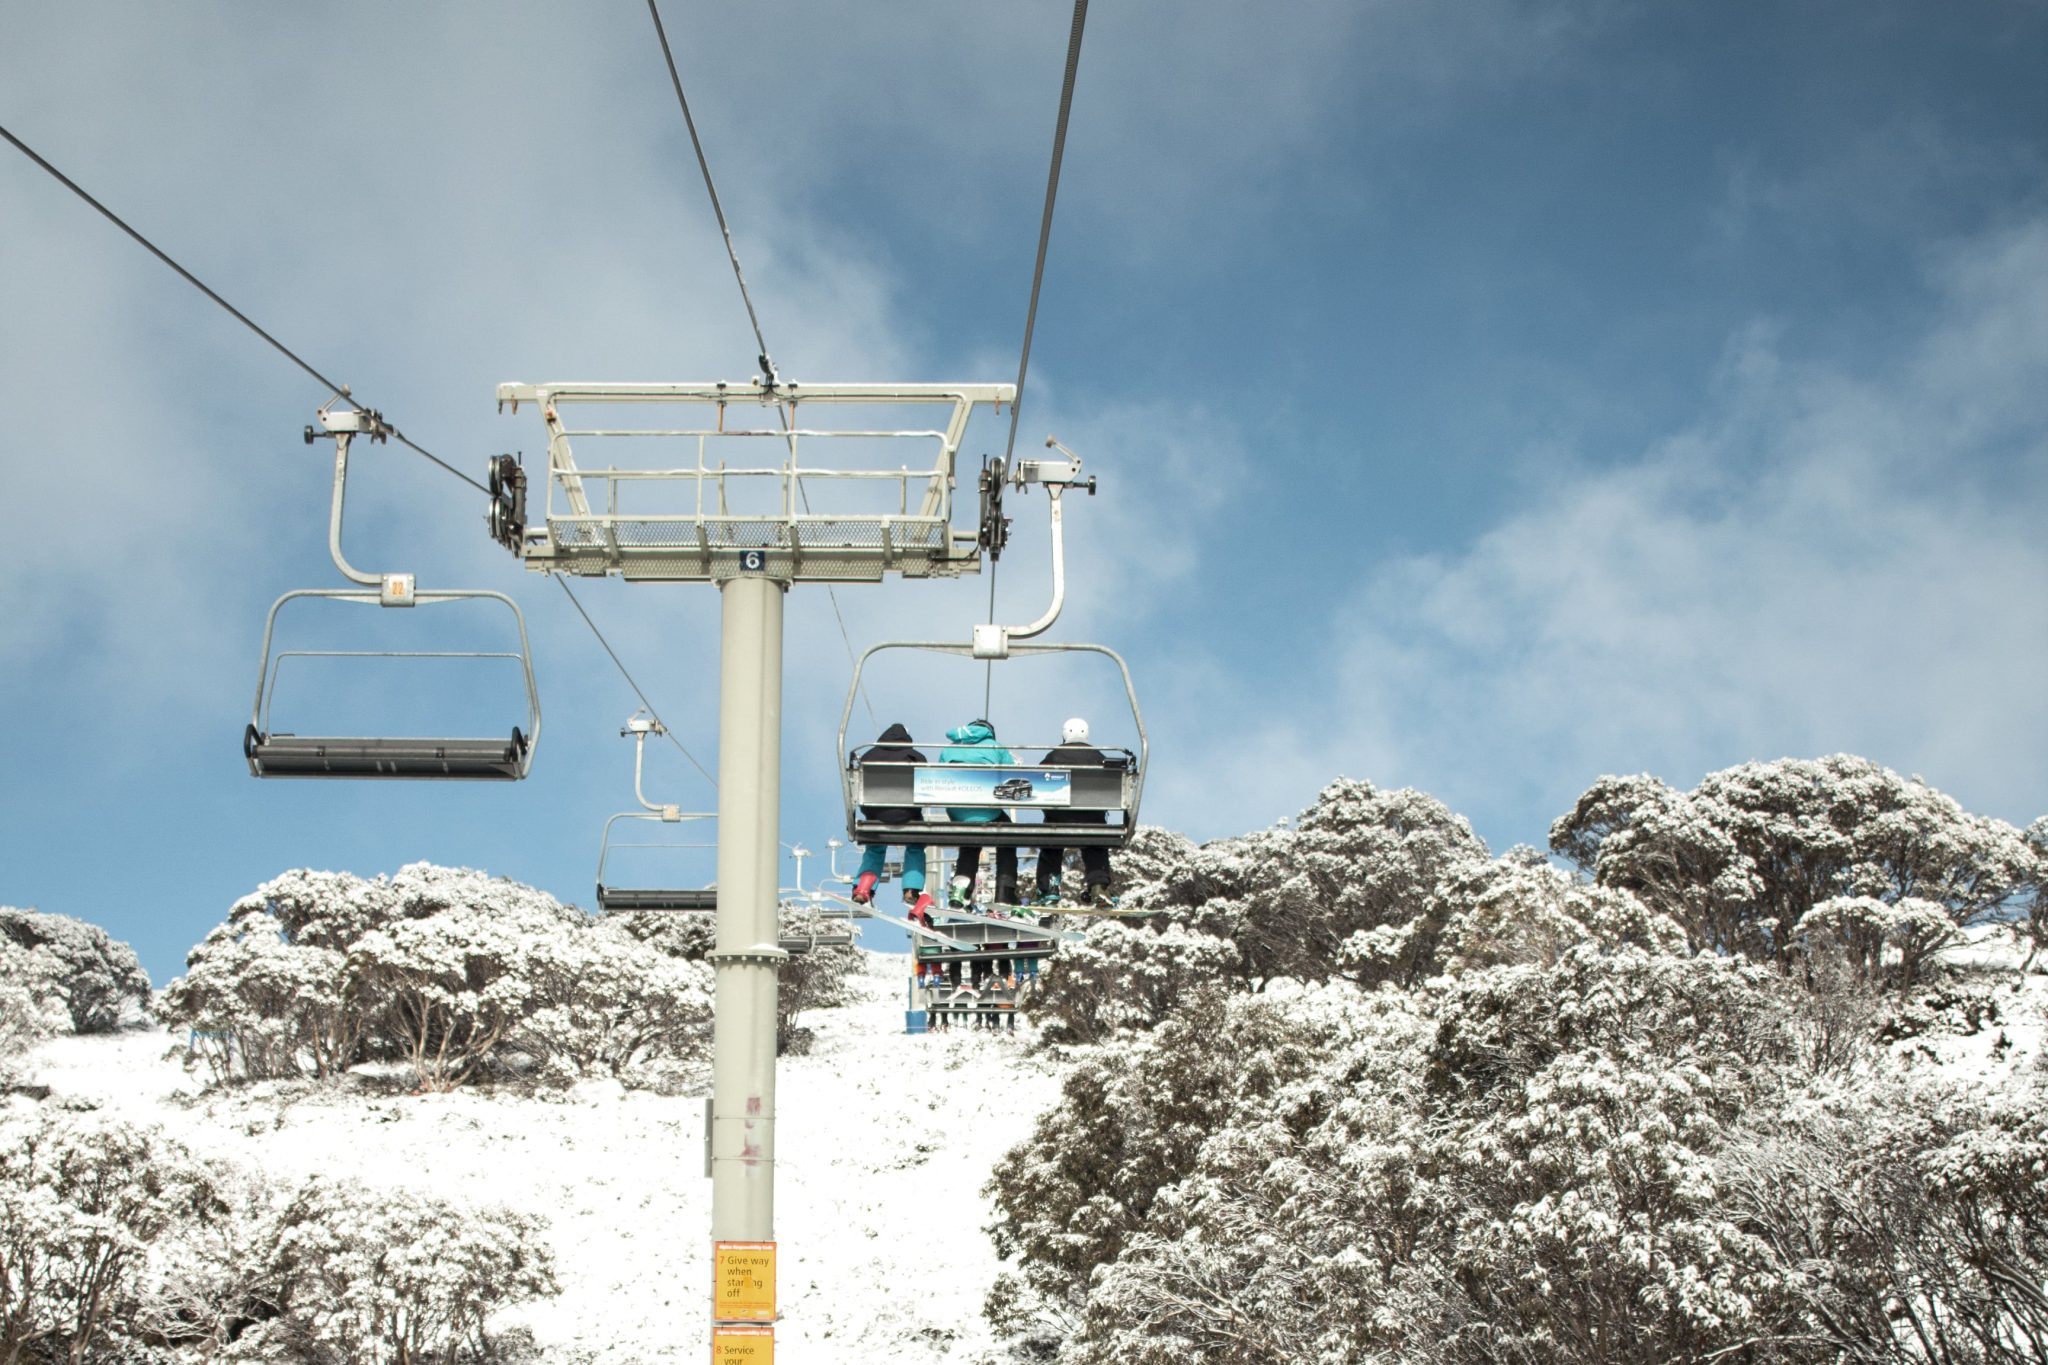 Chair lifts up snowy mountain